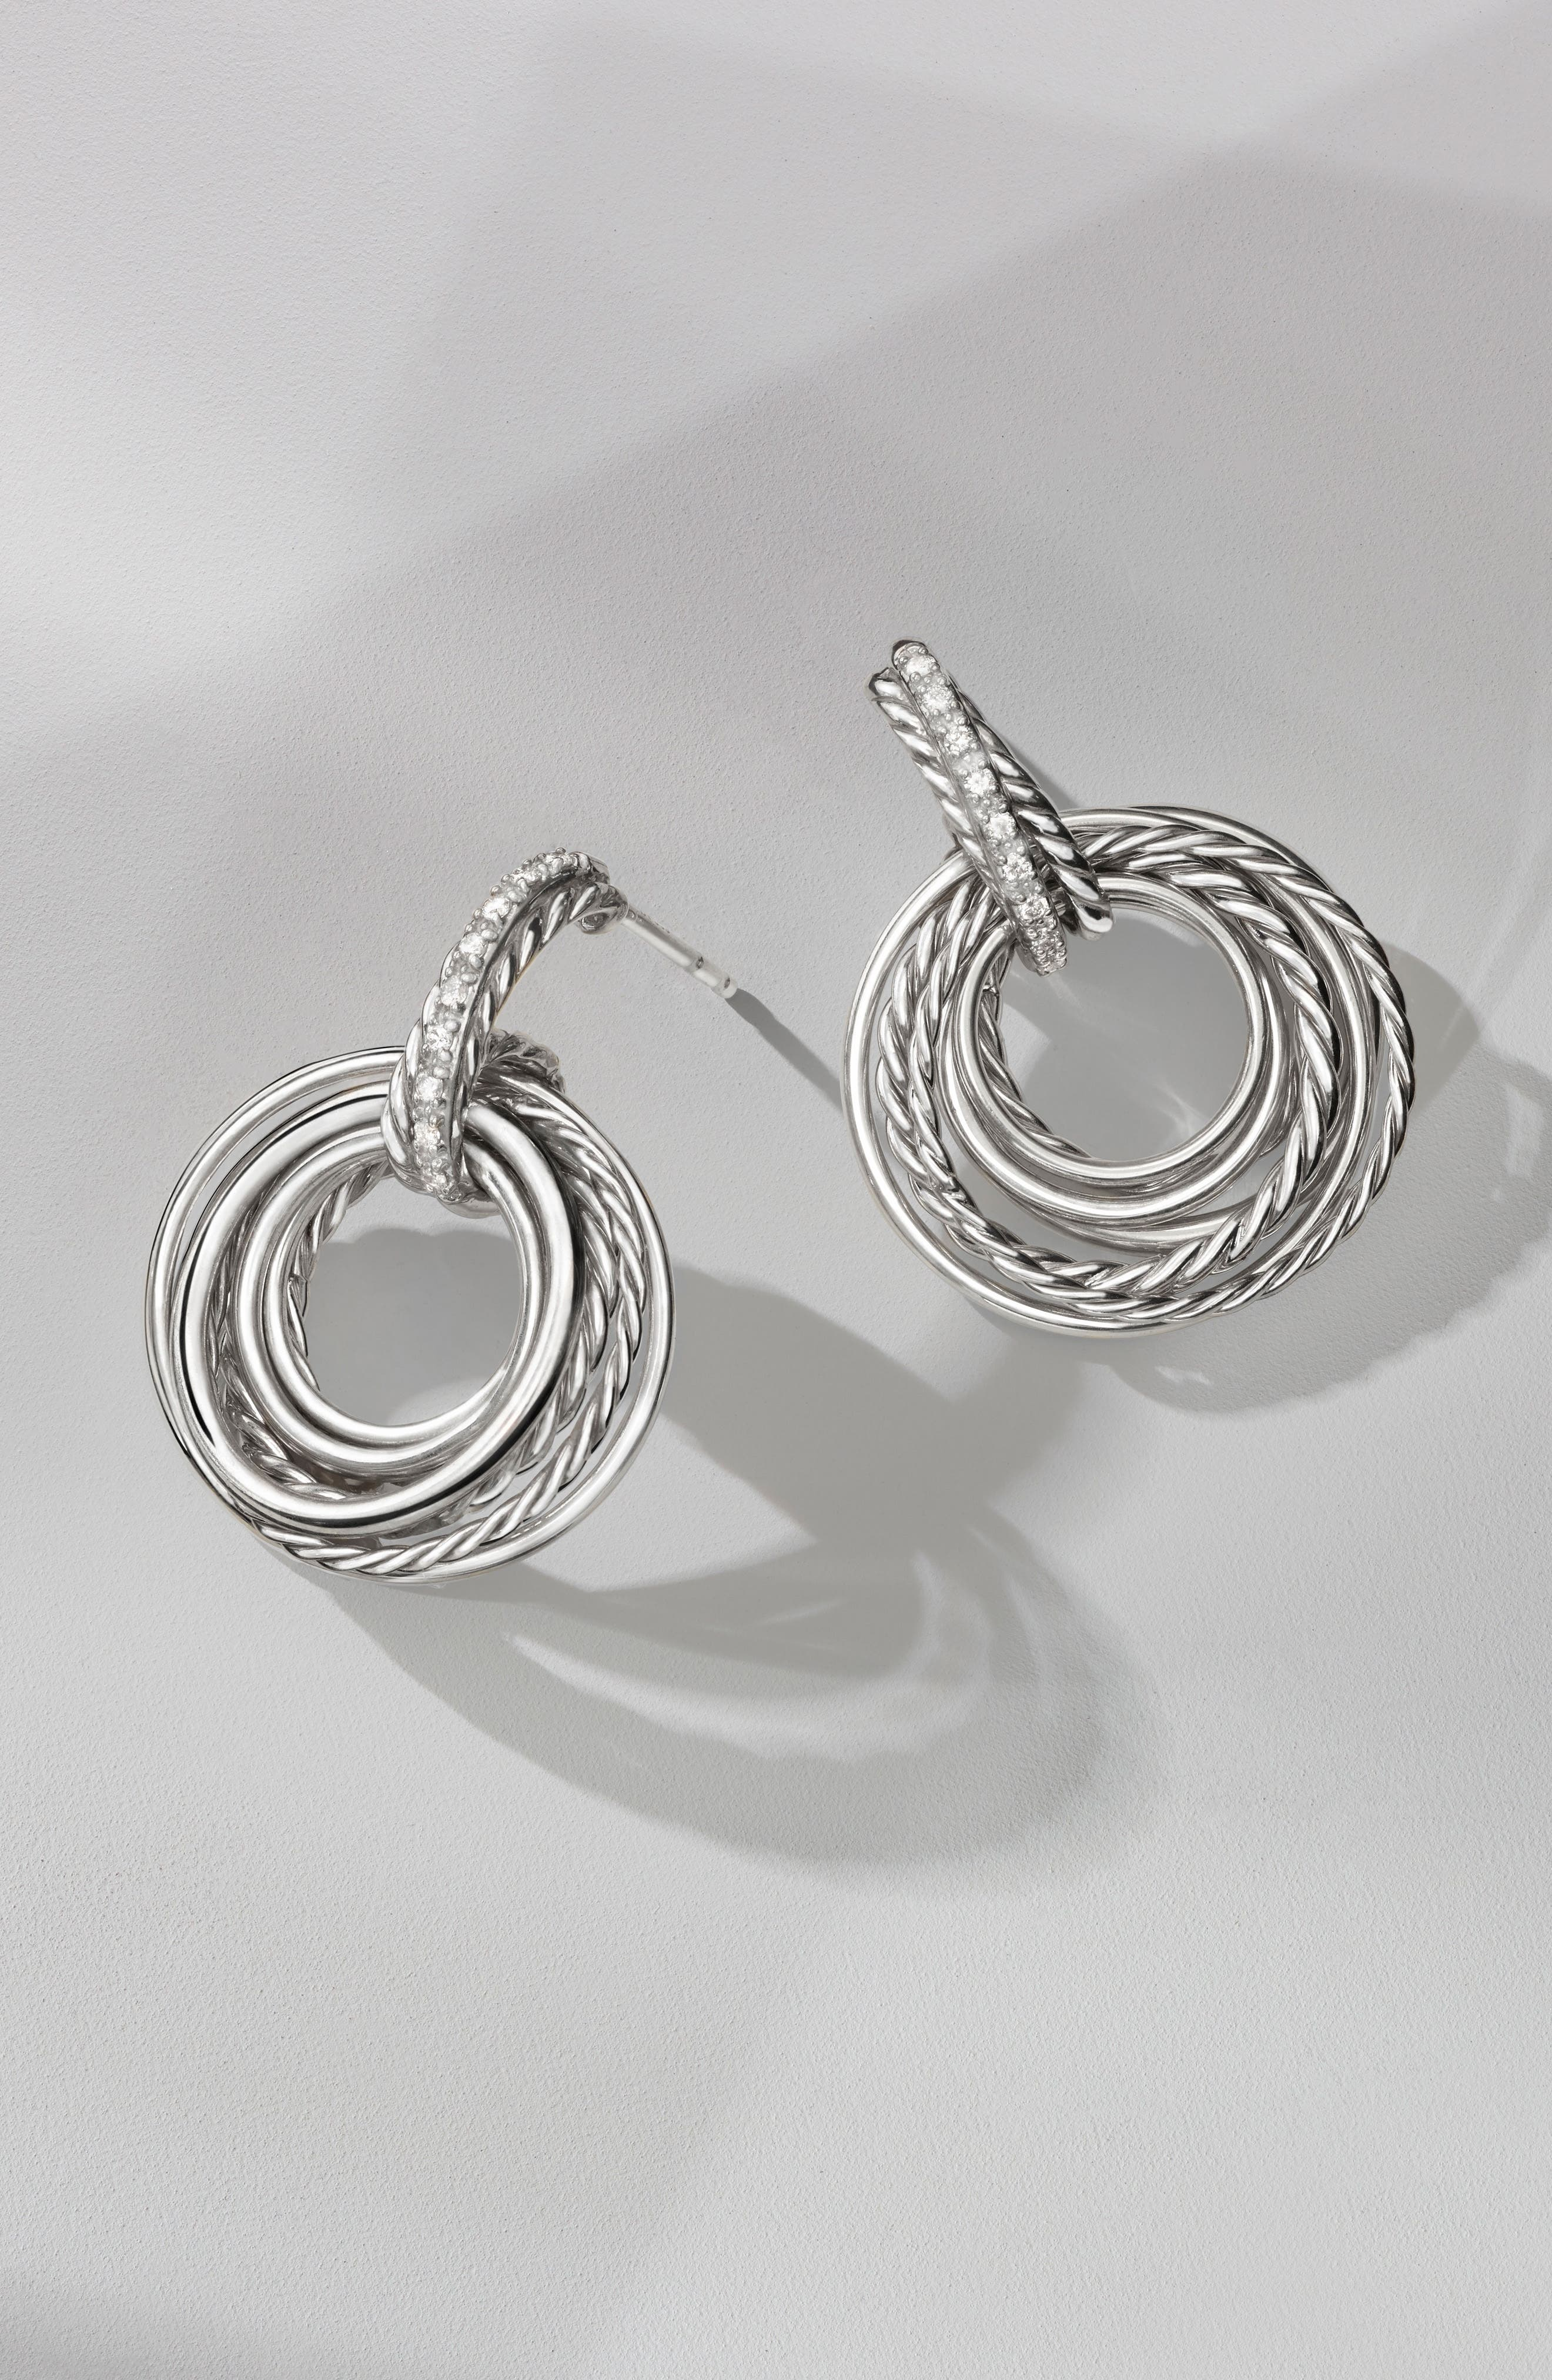 Crossover Drop Earrings with Diamonds,                             Alternate thumbnail 3, color,                             SILVER